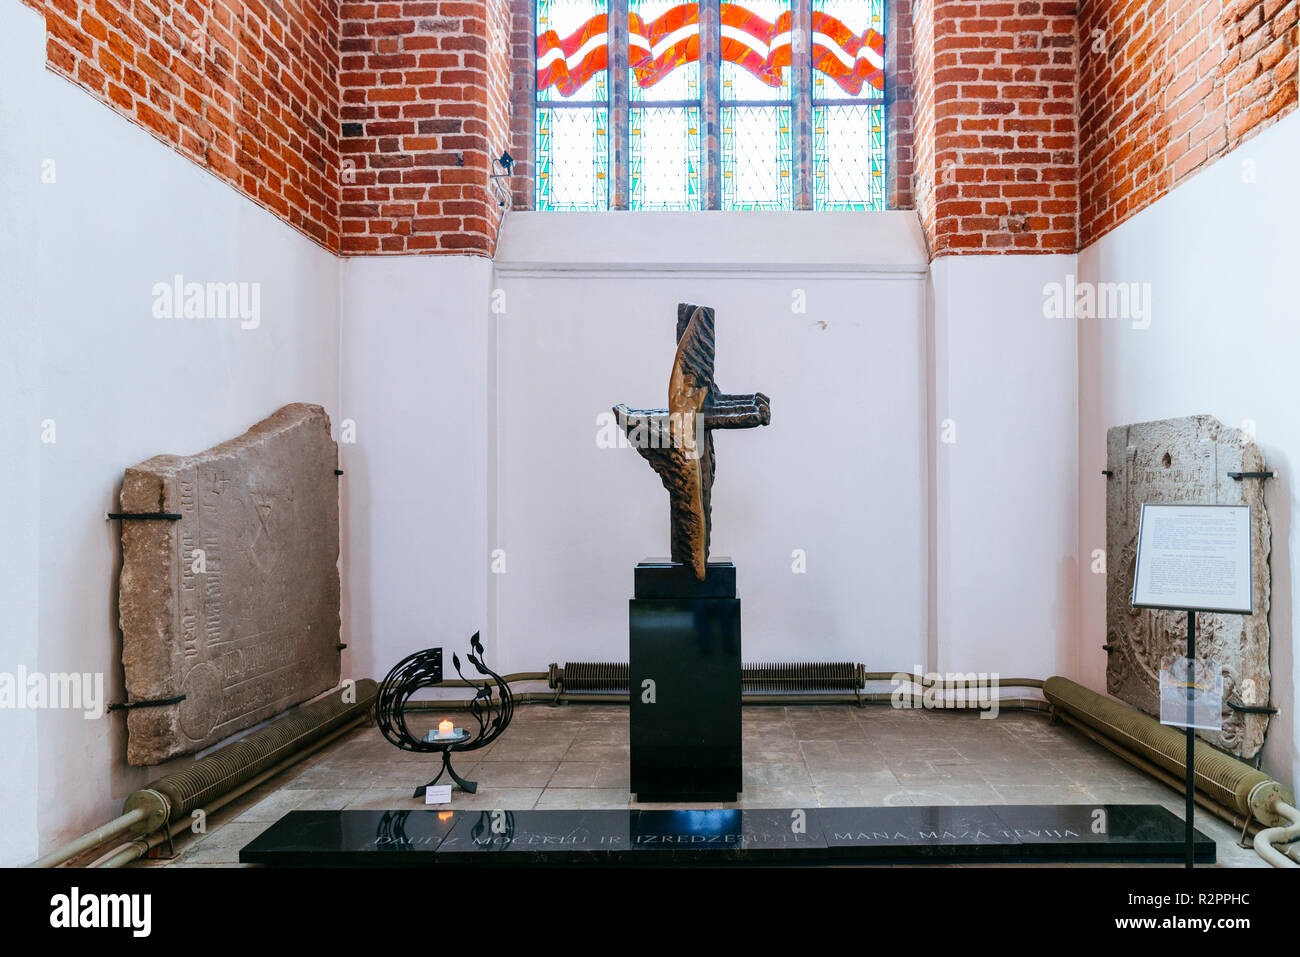 Chapel for victims of repression. St. Peter's Church is a Lutheran church in Riga, the capital of Latvia, dedicated to Saint Peter. Riga, Latvia, Balt - Stock Image